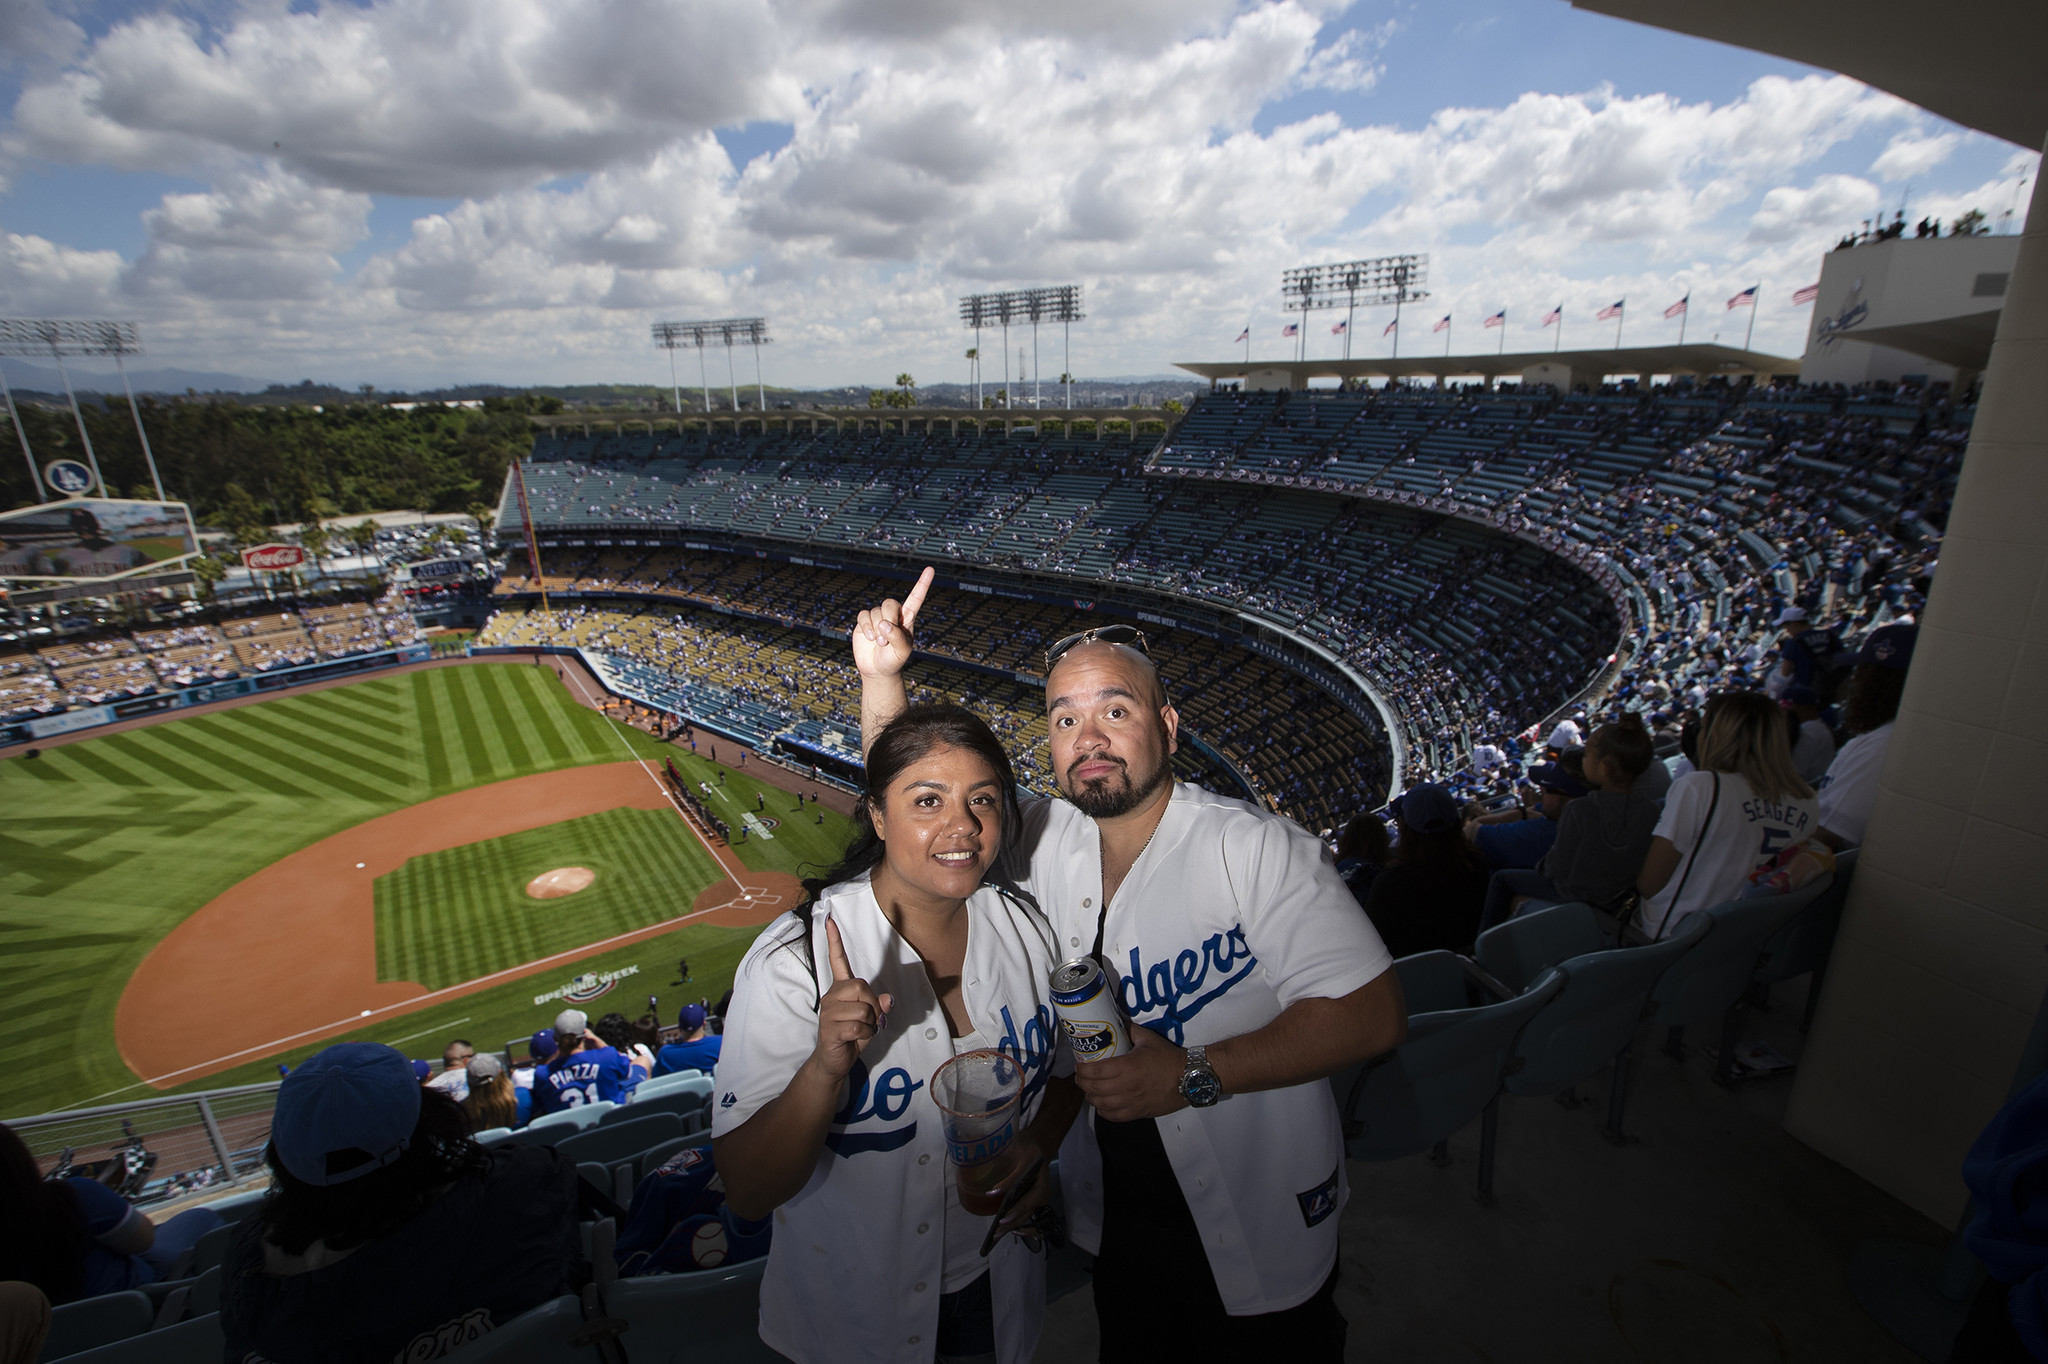 LOS ANGELES, CALIF. -- THURSDAY, MARCH 28, 2019: Dodgers fans Gabby Lamas and Steve Arellamo, of Los